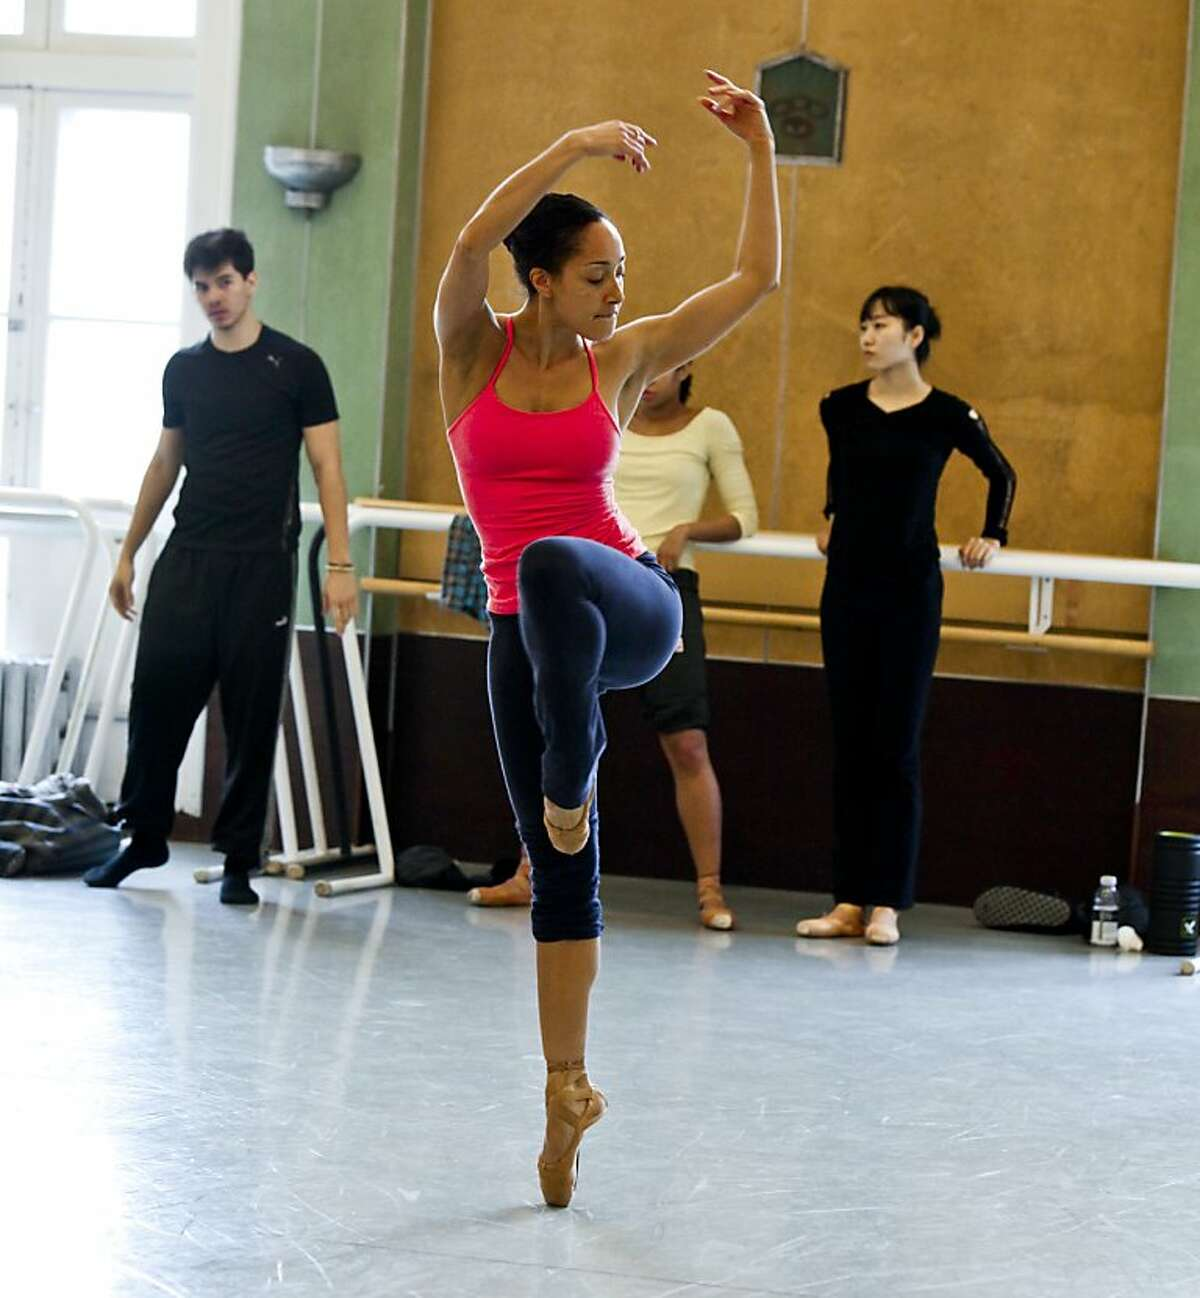 Caroline Rocher of Lines Ballet rehearses on Friday, March 16, 2012 in San Francisco, Calif.